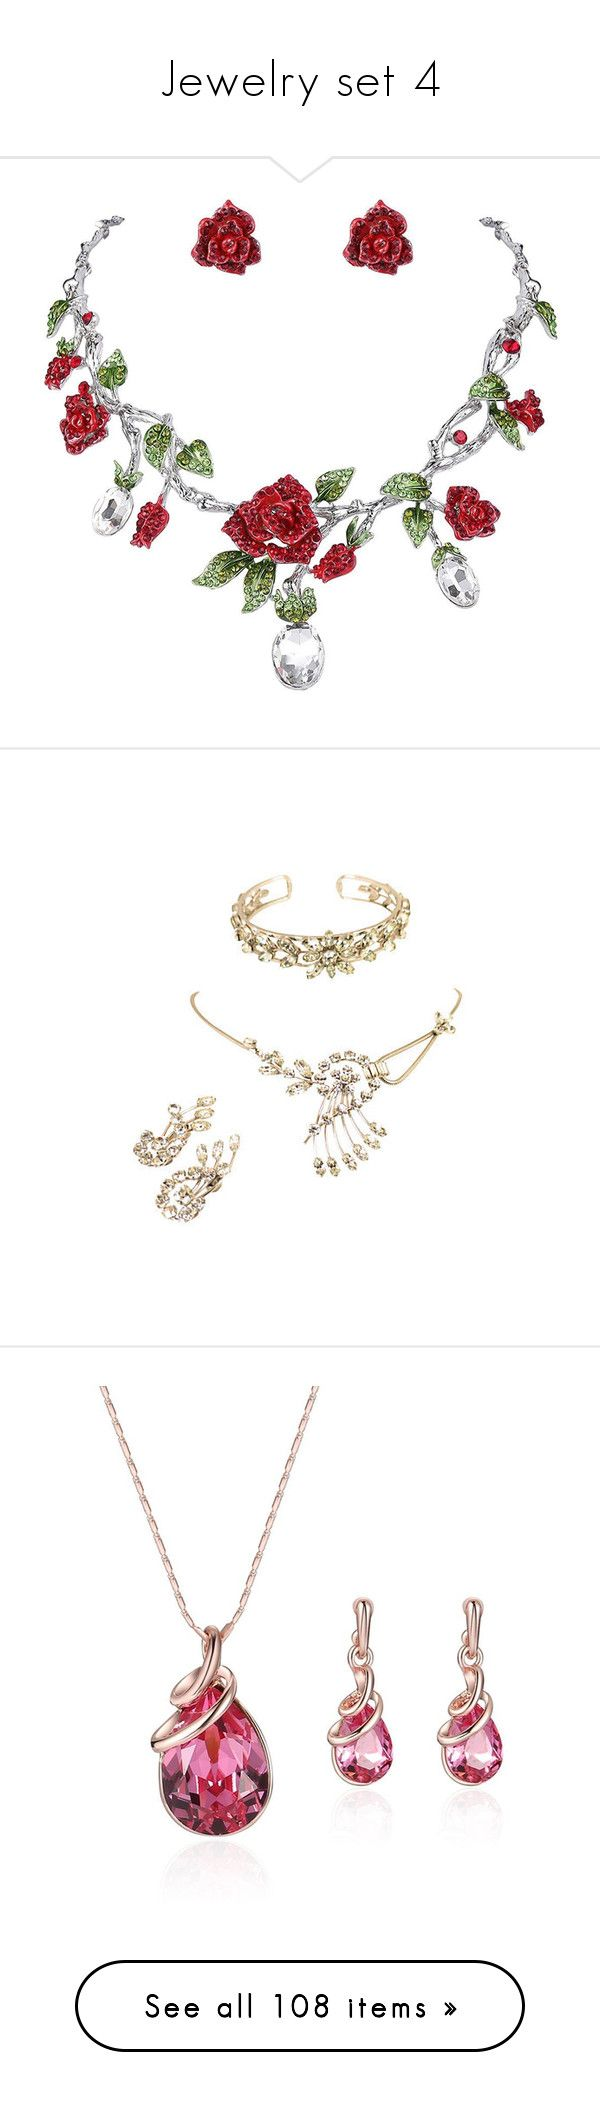 """""""Jewelry set 4"""" by thesassystewart on Polyvore featuring jewelry, earrings, red rhinestone earrings, red jewelry sets, rose earrings, red crystal earrings, green crystal earrings, clear crystal jewelry, white jewelry and 14k jewelry"""